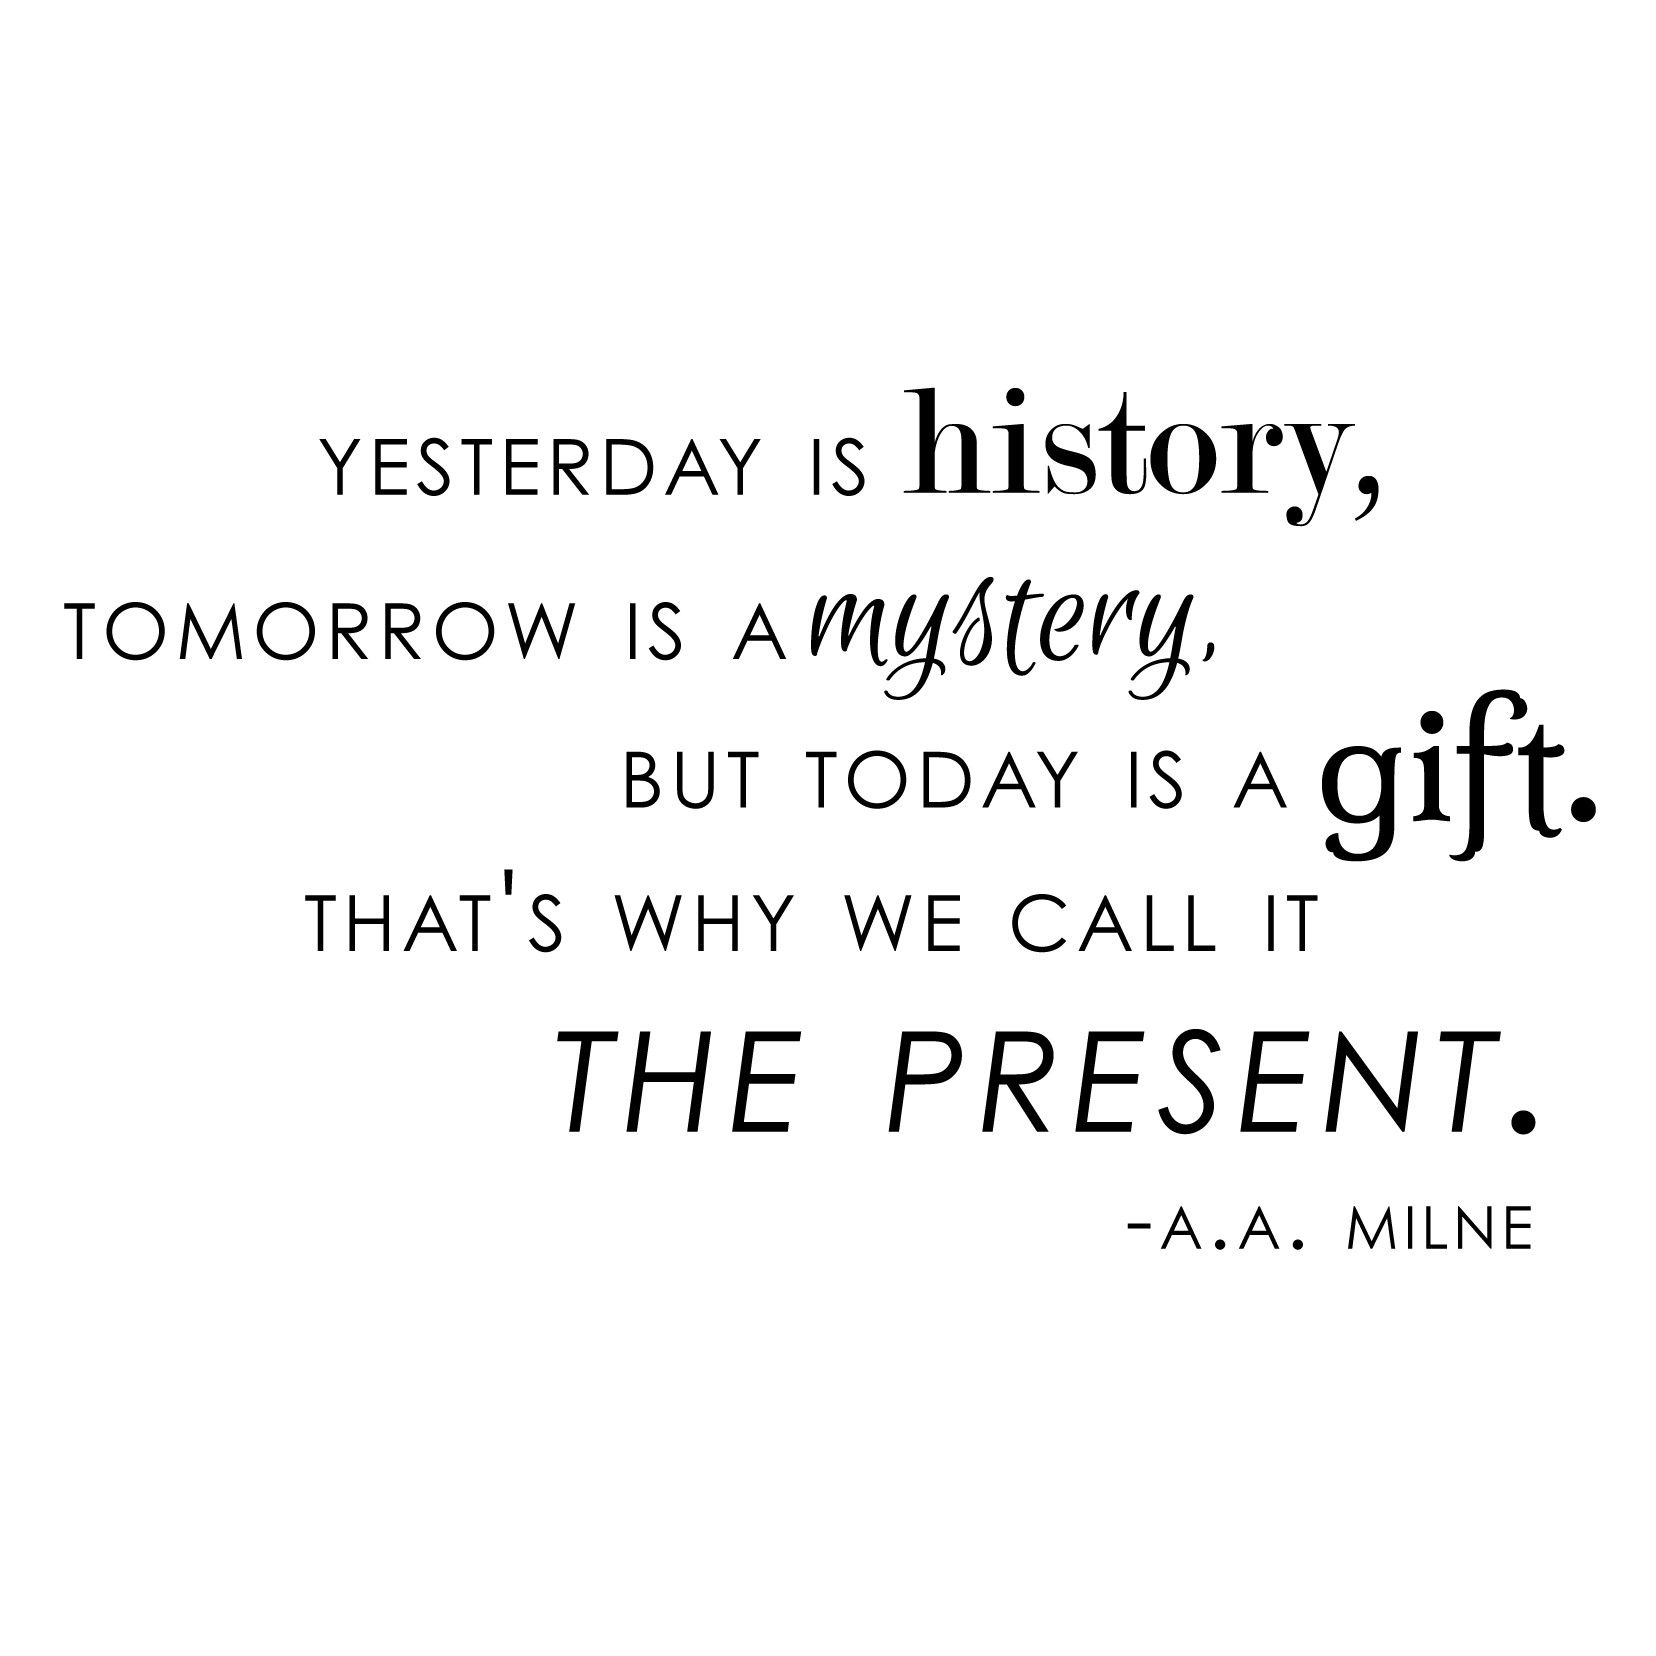 Yesterday is history tomorrow is a mystery and today is a gift thats why we call it the present